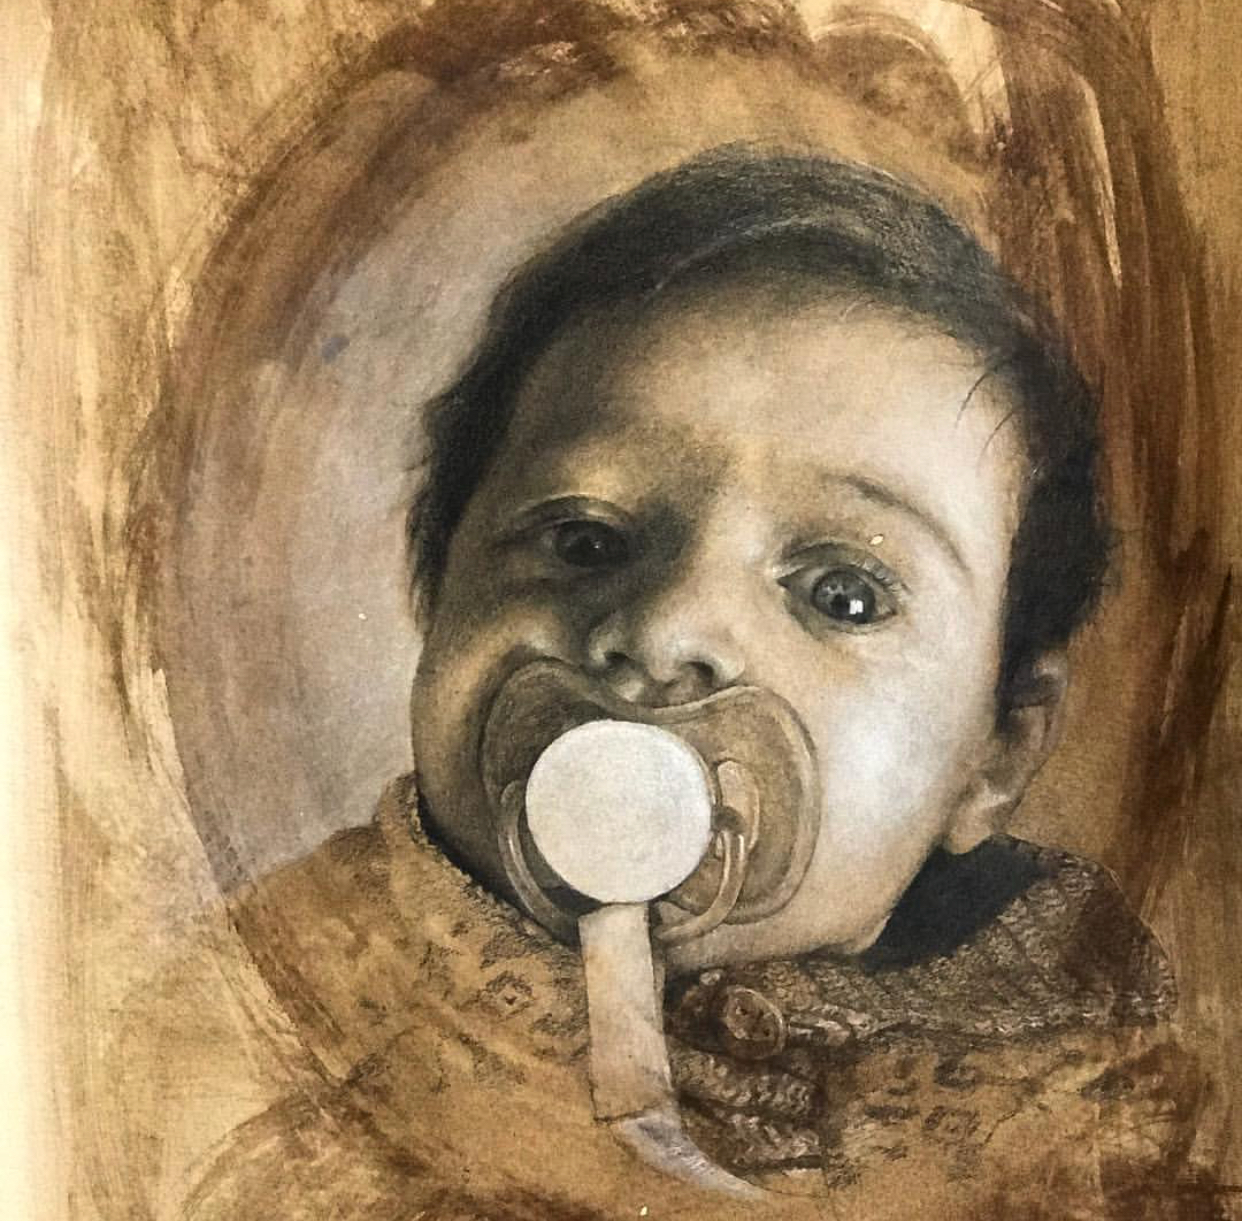 Theo. Graphite and Chalk. 18x16in